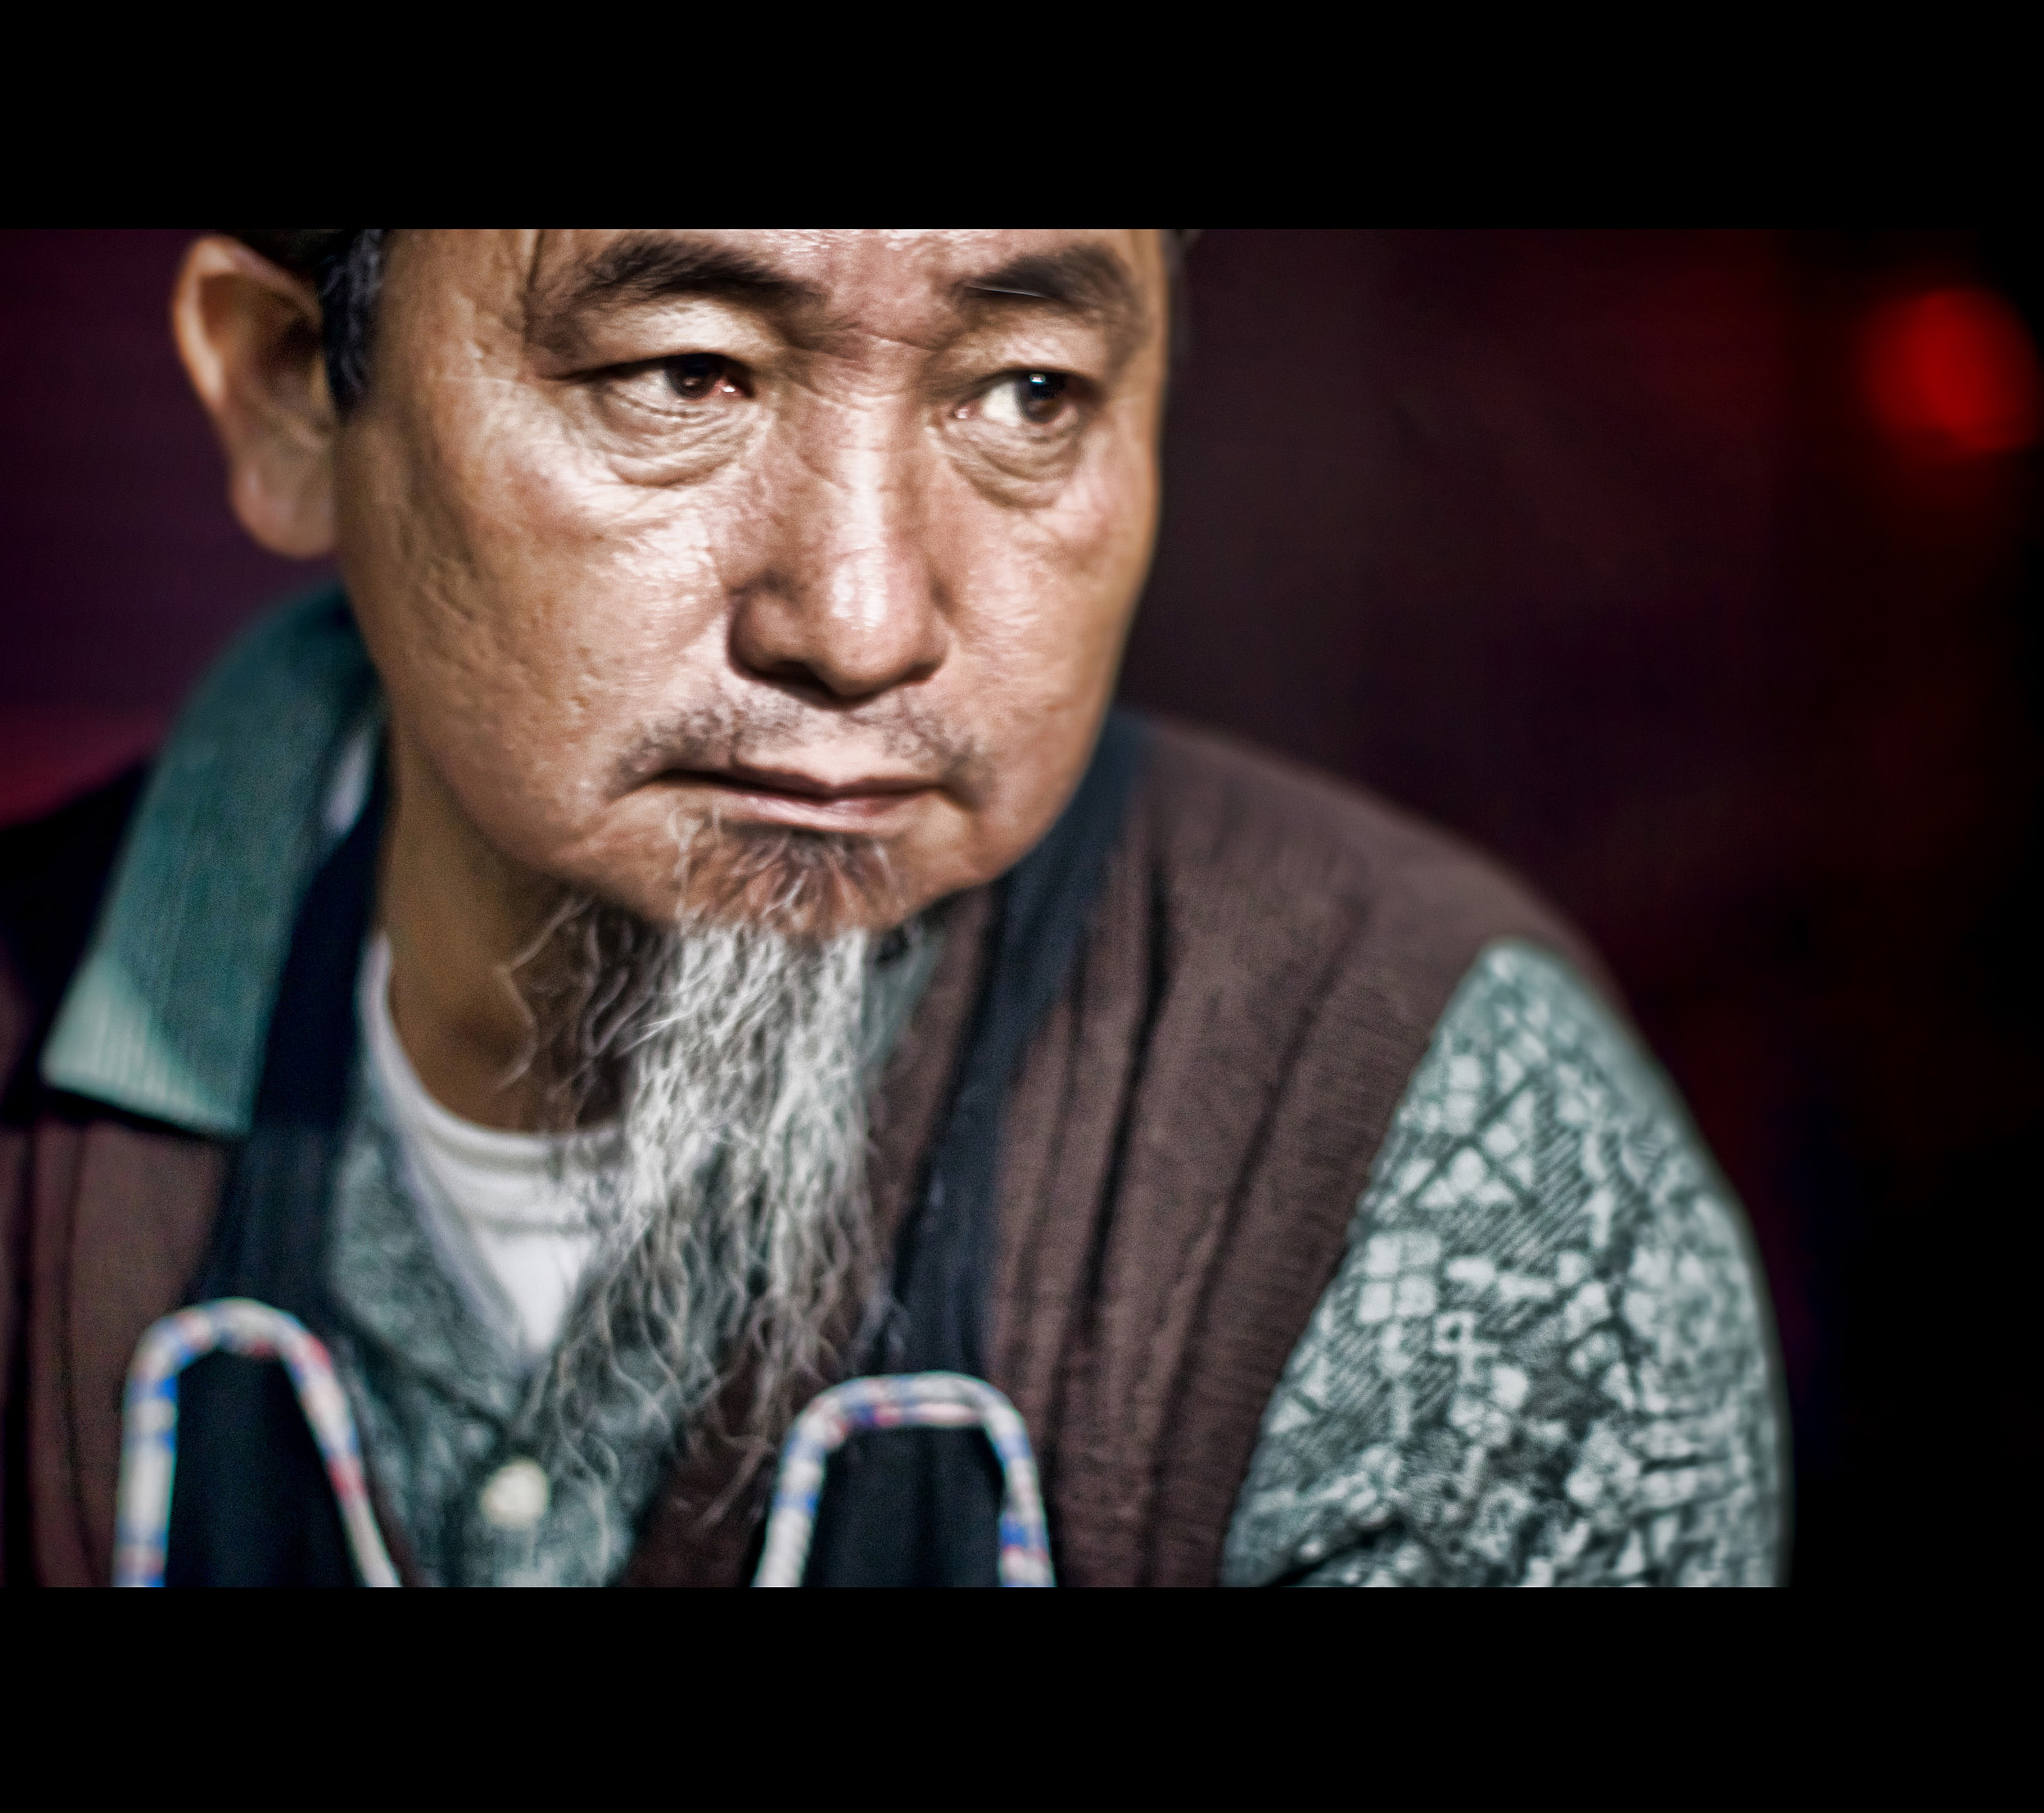 Photograph Old Man Portrait by Eric Edouard Amilhat on 500px